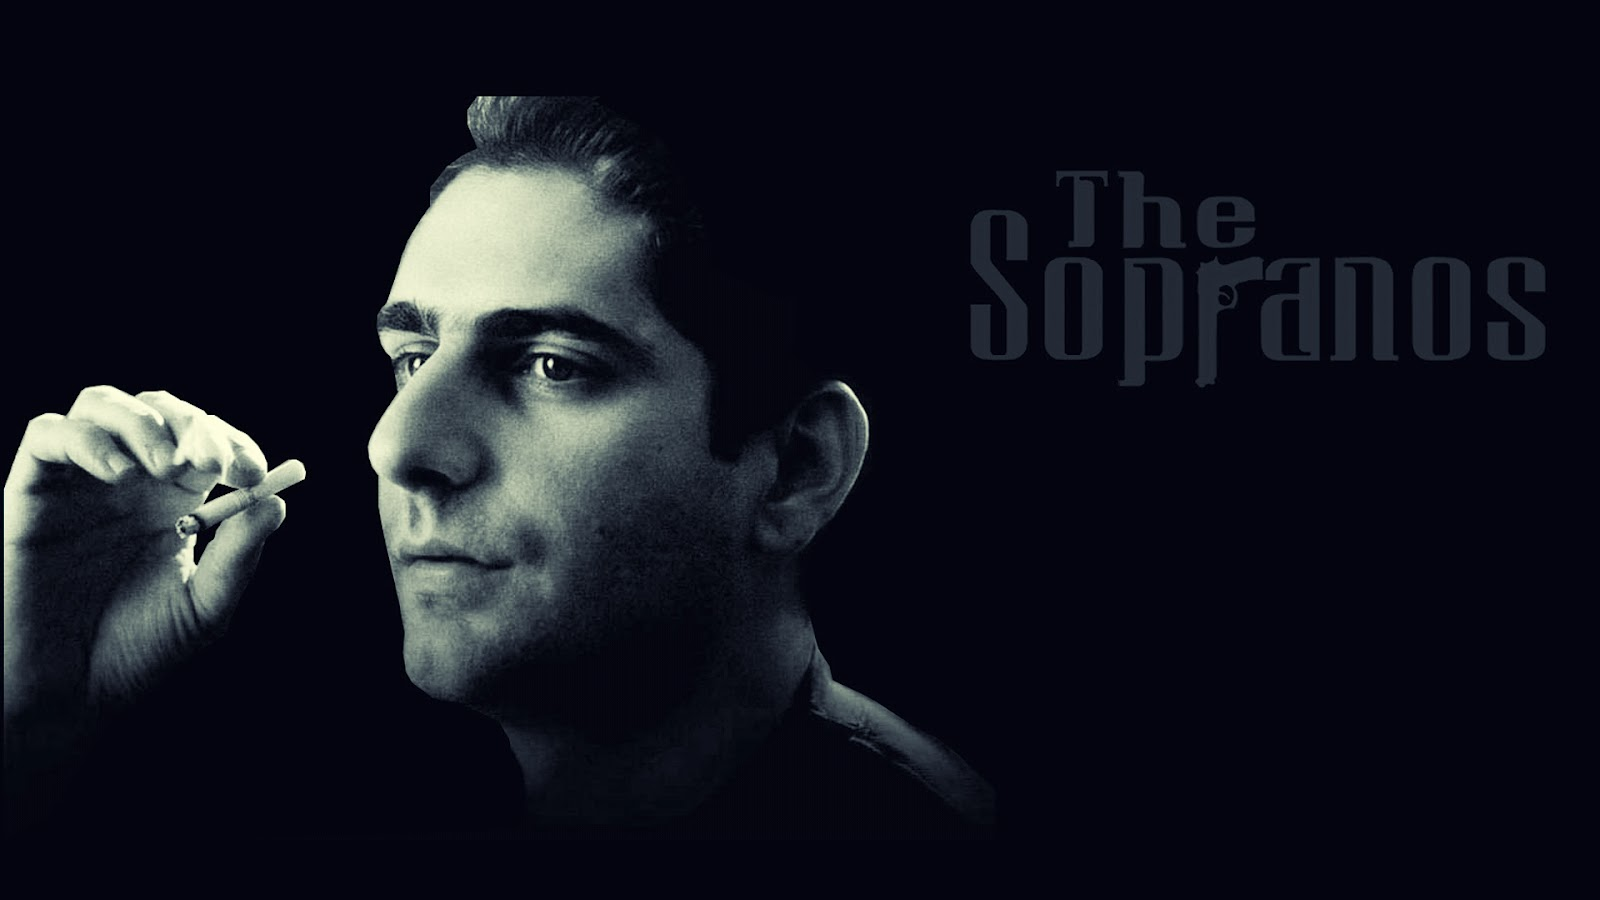 Onelife posts photos the sopranos - Sopranos wallpaper ...